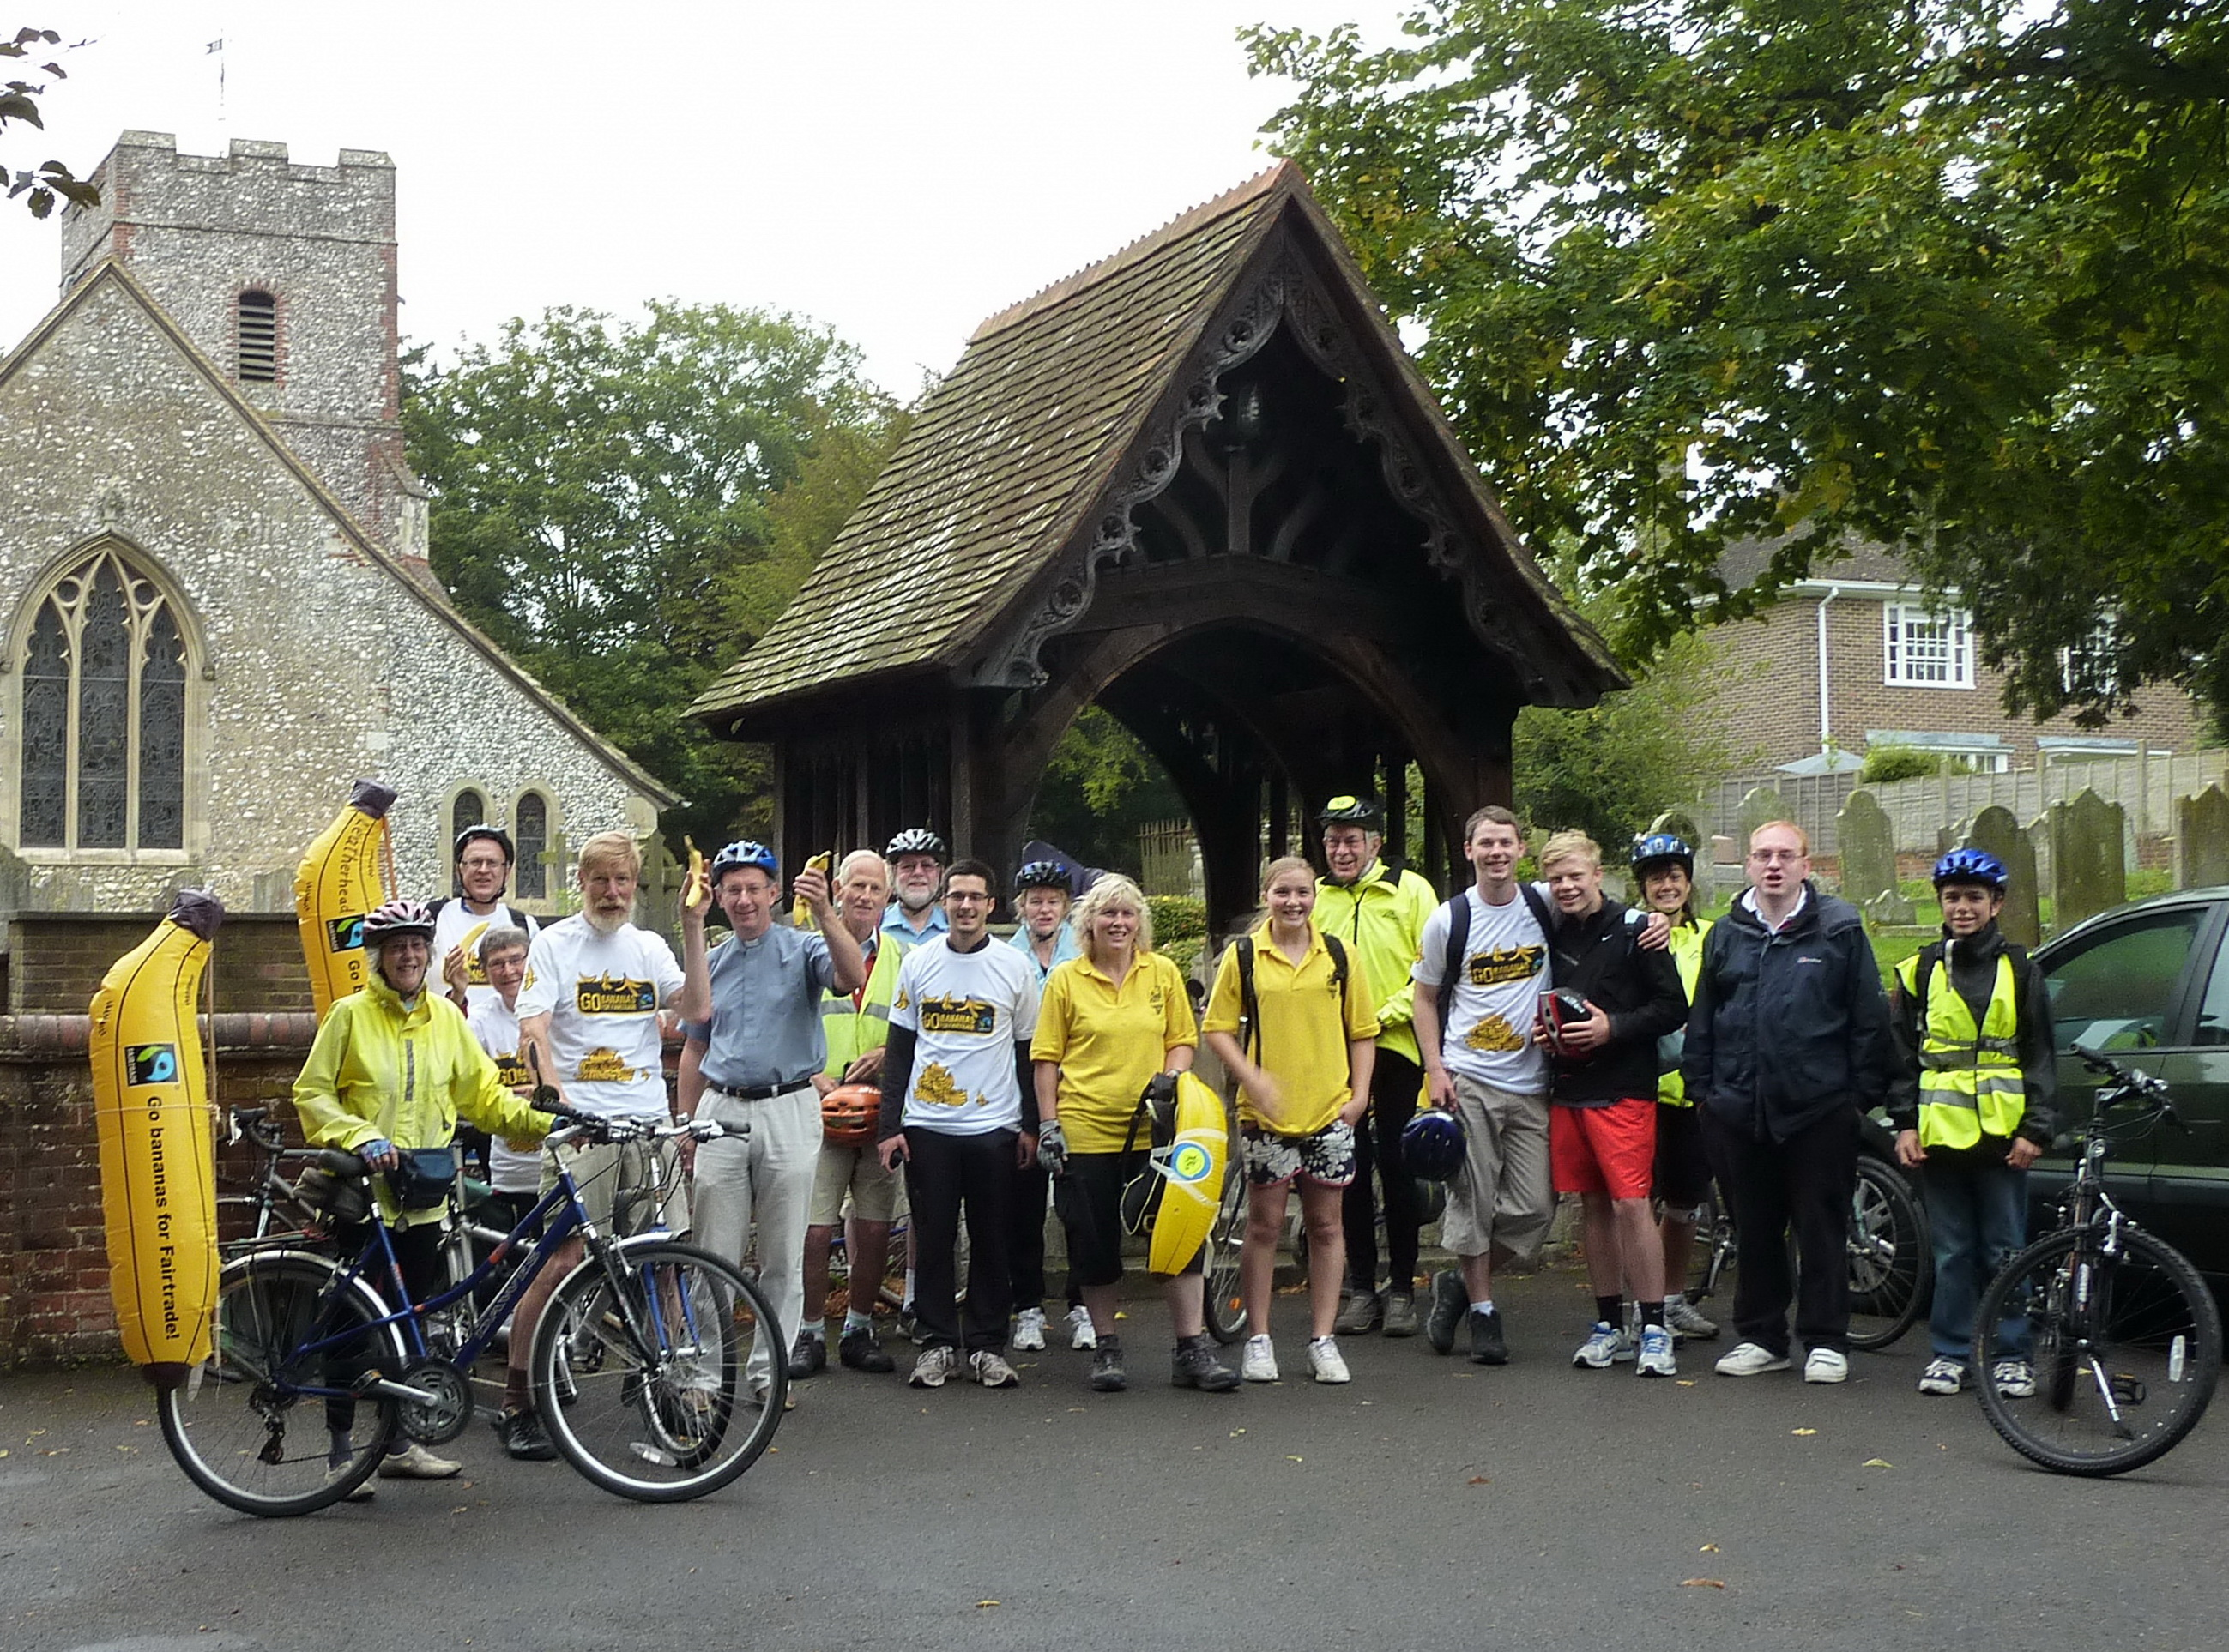 A team of Surrey Ride and Striders in the Leatherhead area